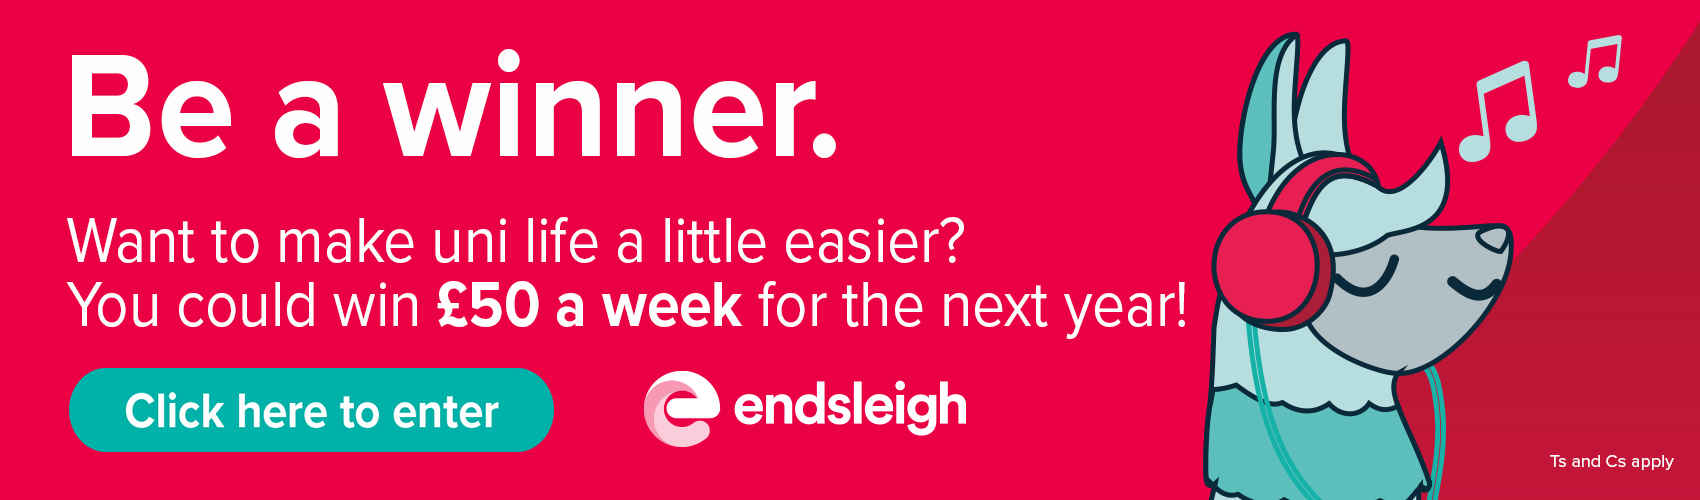 Check out this great competition from Endsleigh